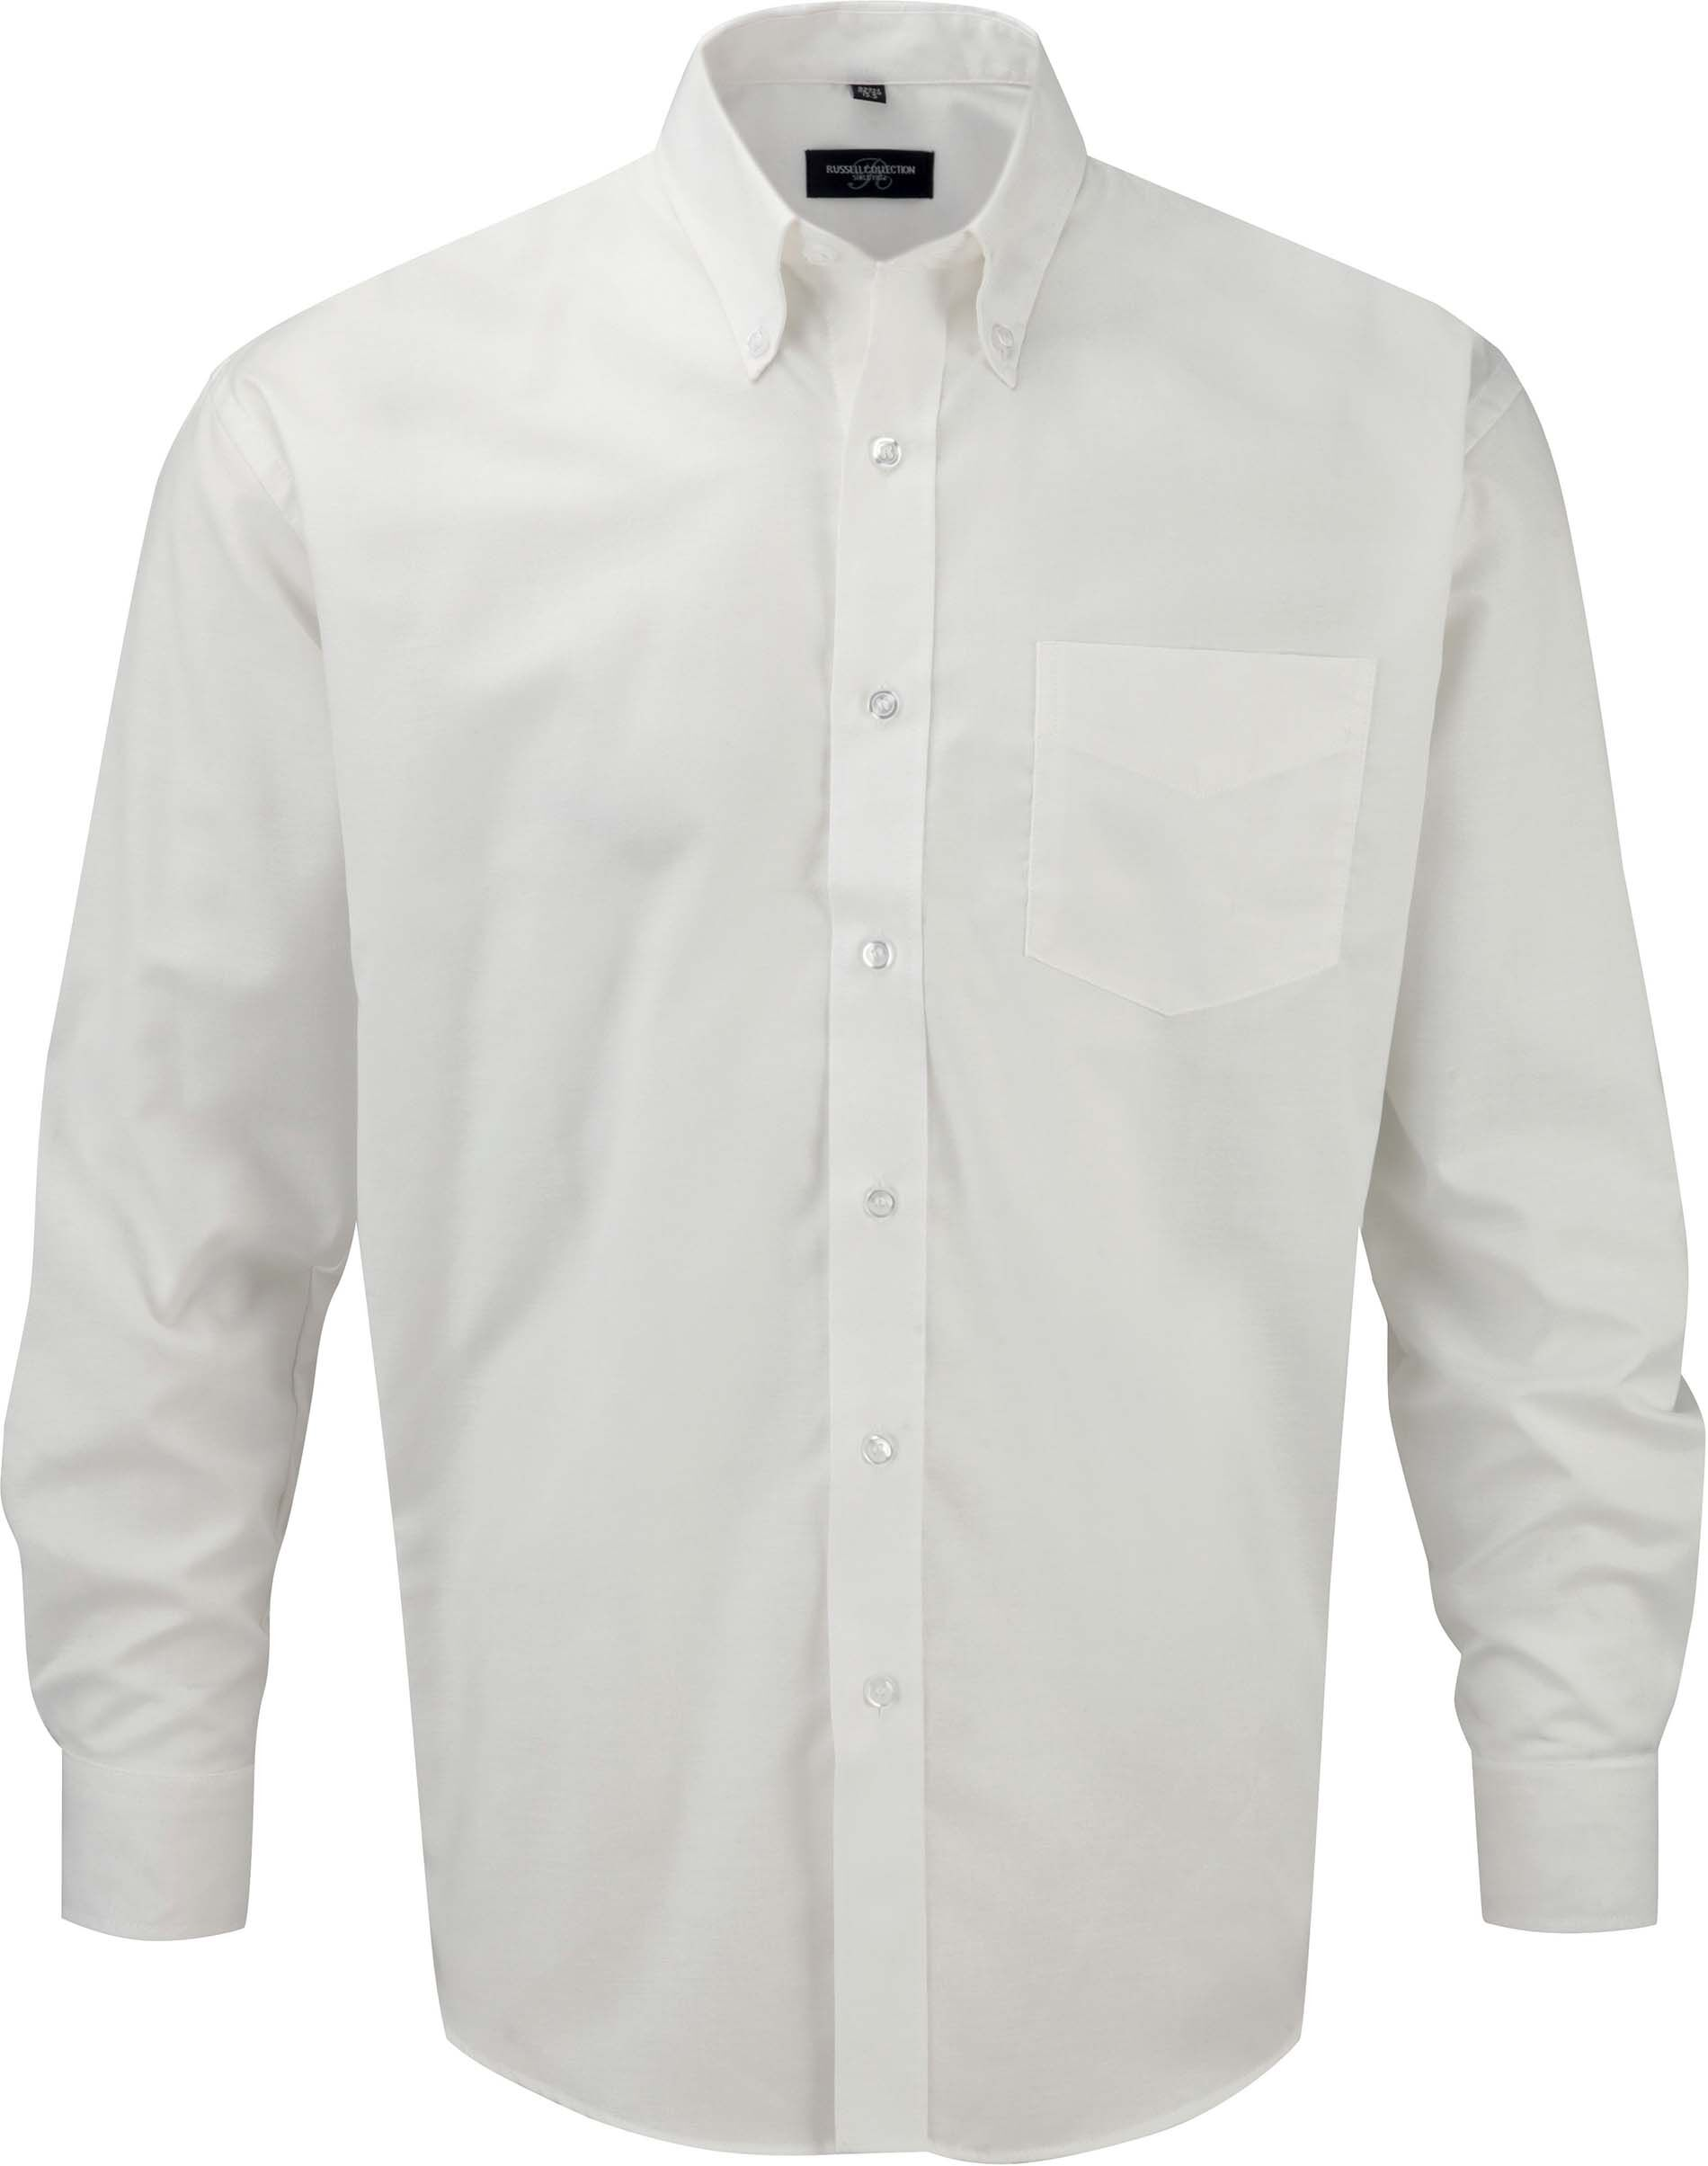 Chemise manches longues oxford White